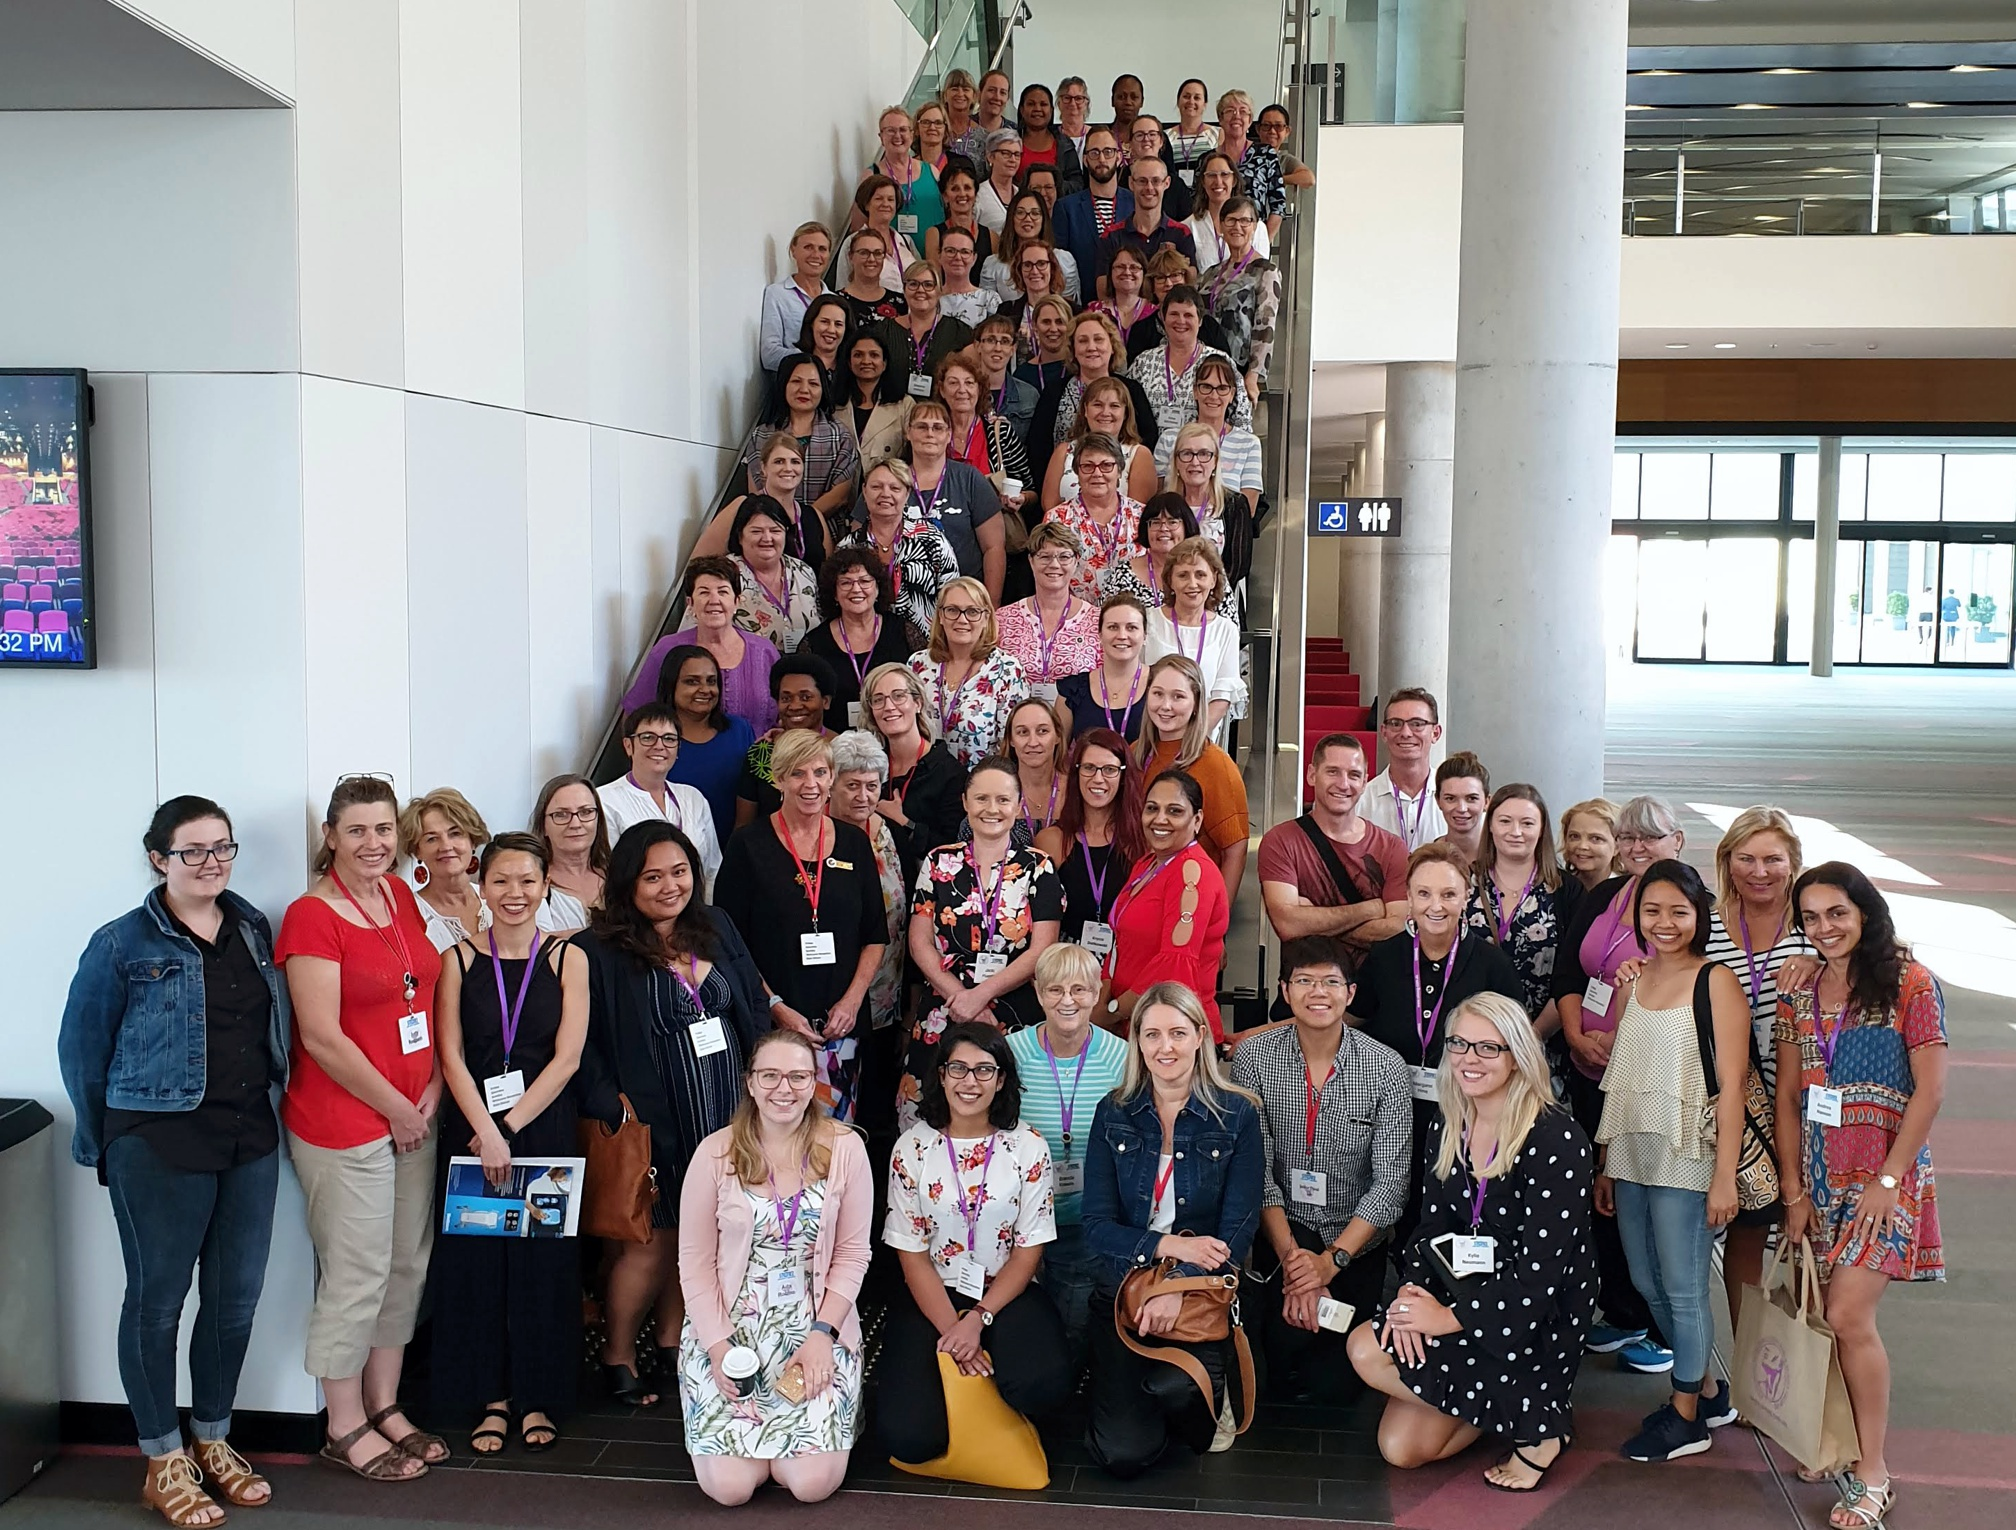 2019 national conference photos – OHNNG